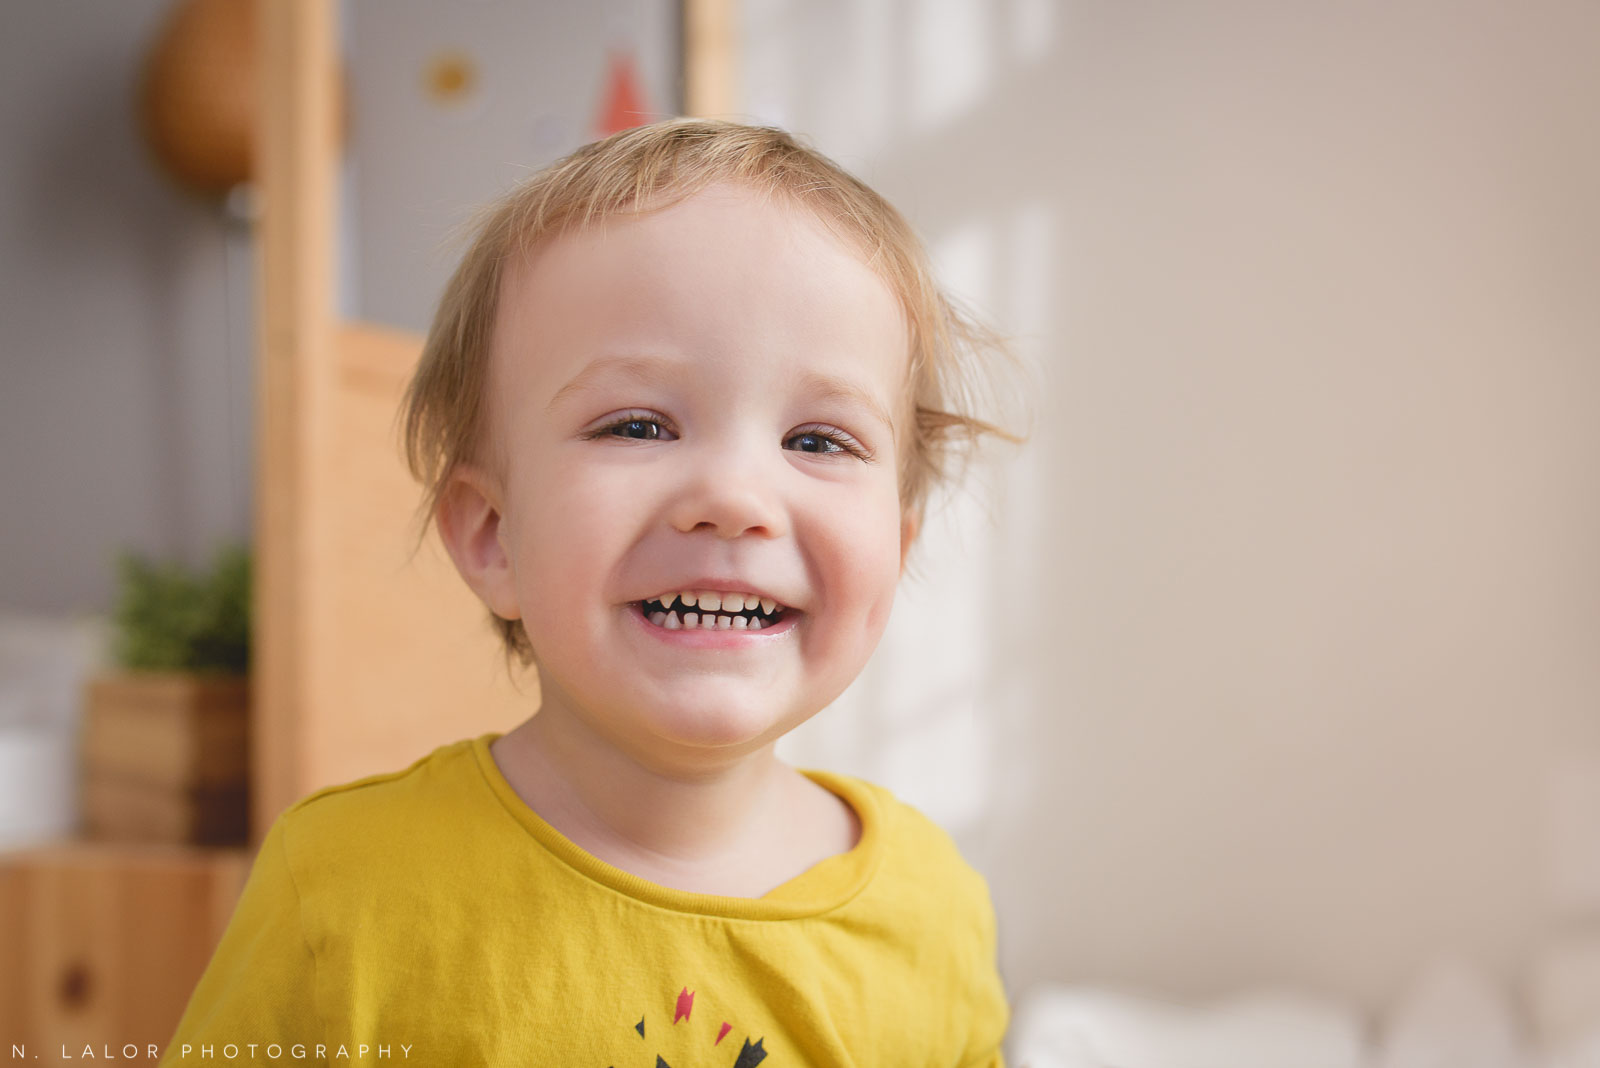 Smiling happy two year old boy in his room. Photo by N. Lalor Photography.